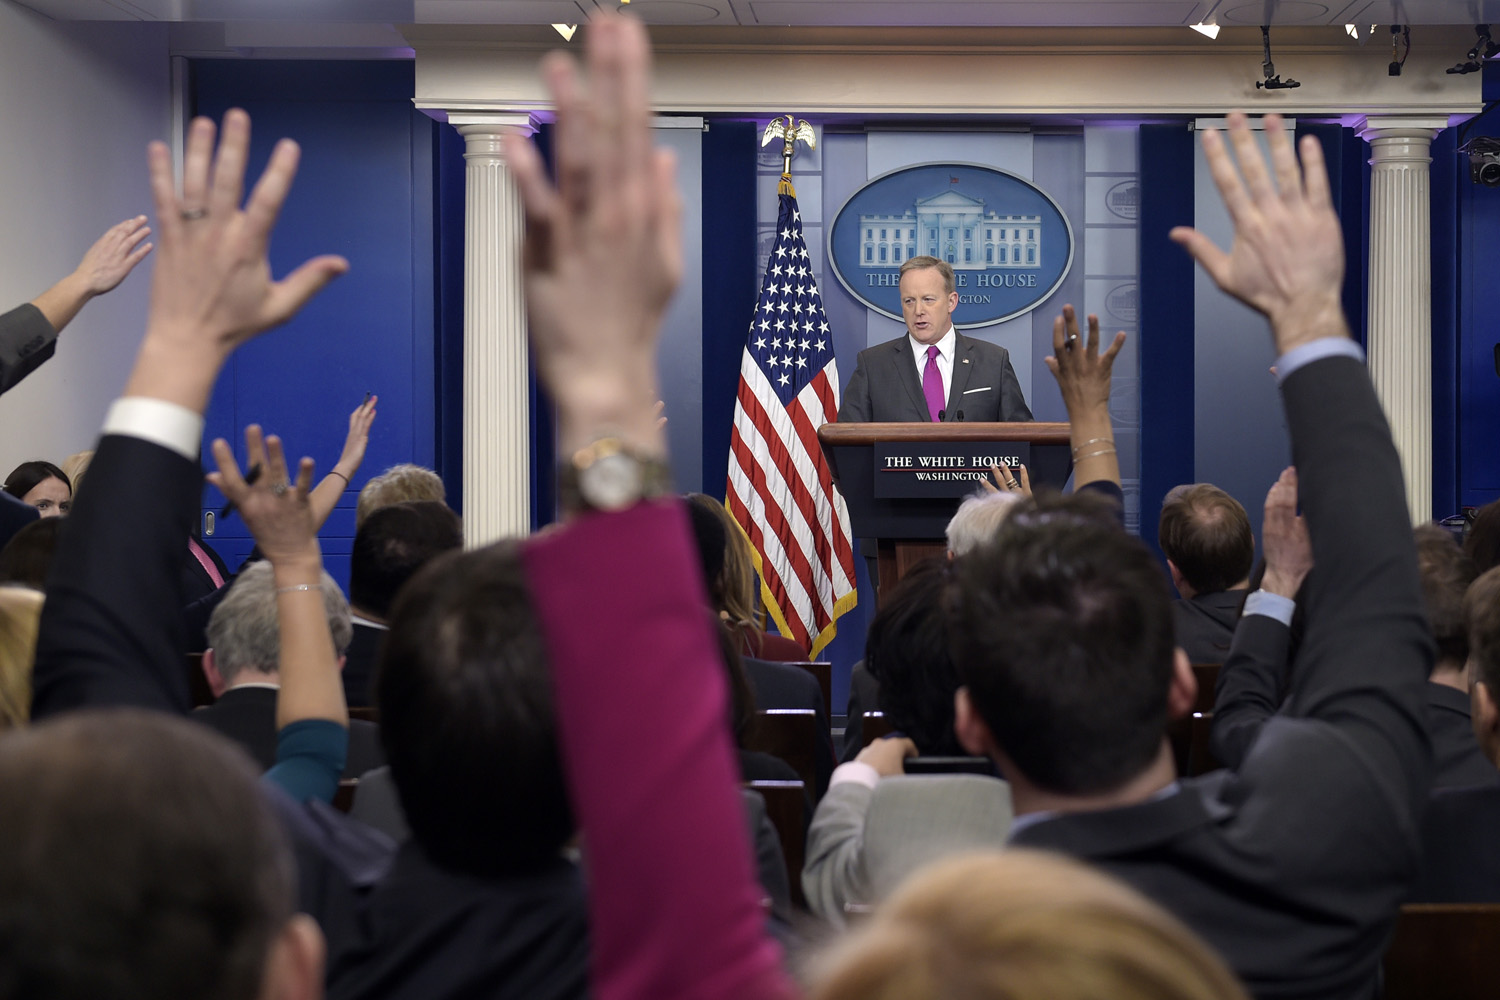 White House press secretary Sean Spicer speaks during the daily briefing at the White House in Washington, (Susan Walsh/AP)